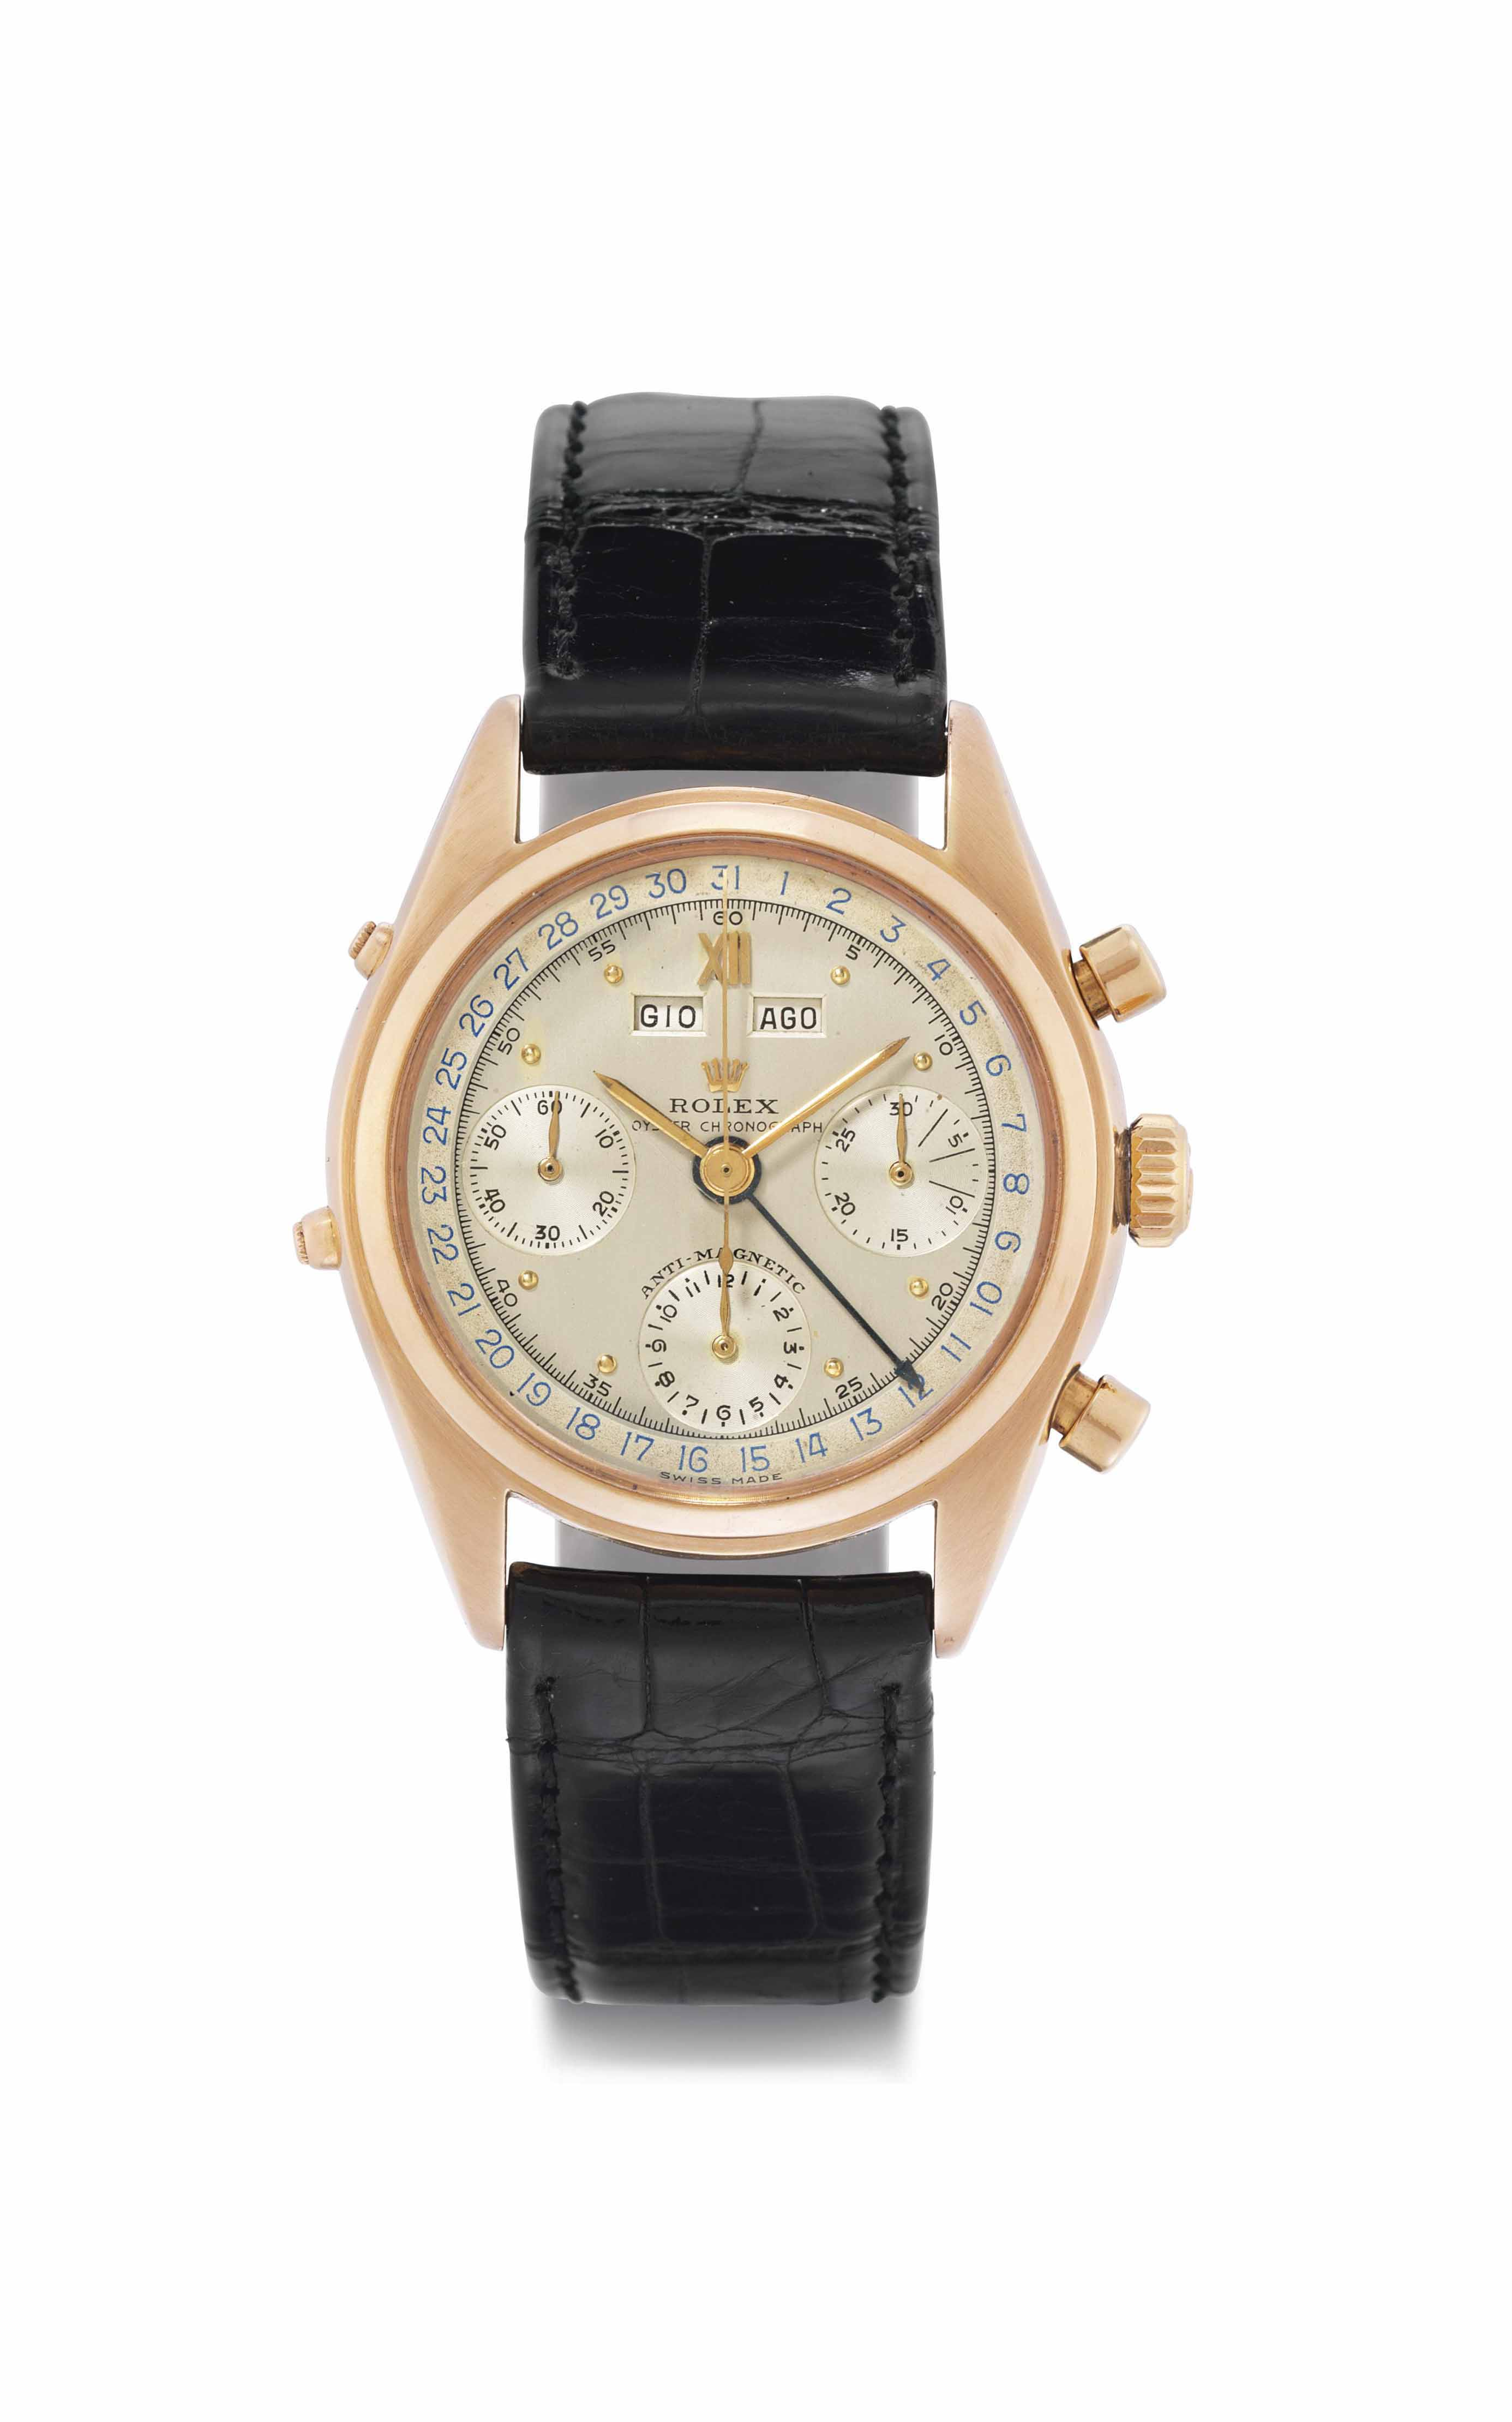 Rolex. A Very Fine and Extremely Rare 18k Pink Gold Triple Calendar Chronograph Wristwatch with Two-Tone Silvered Dial Made for the Italian Market